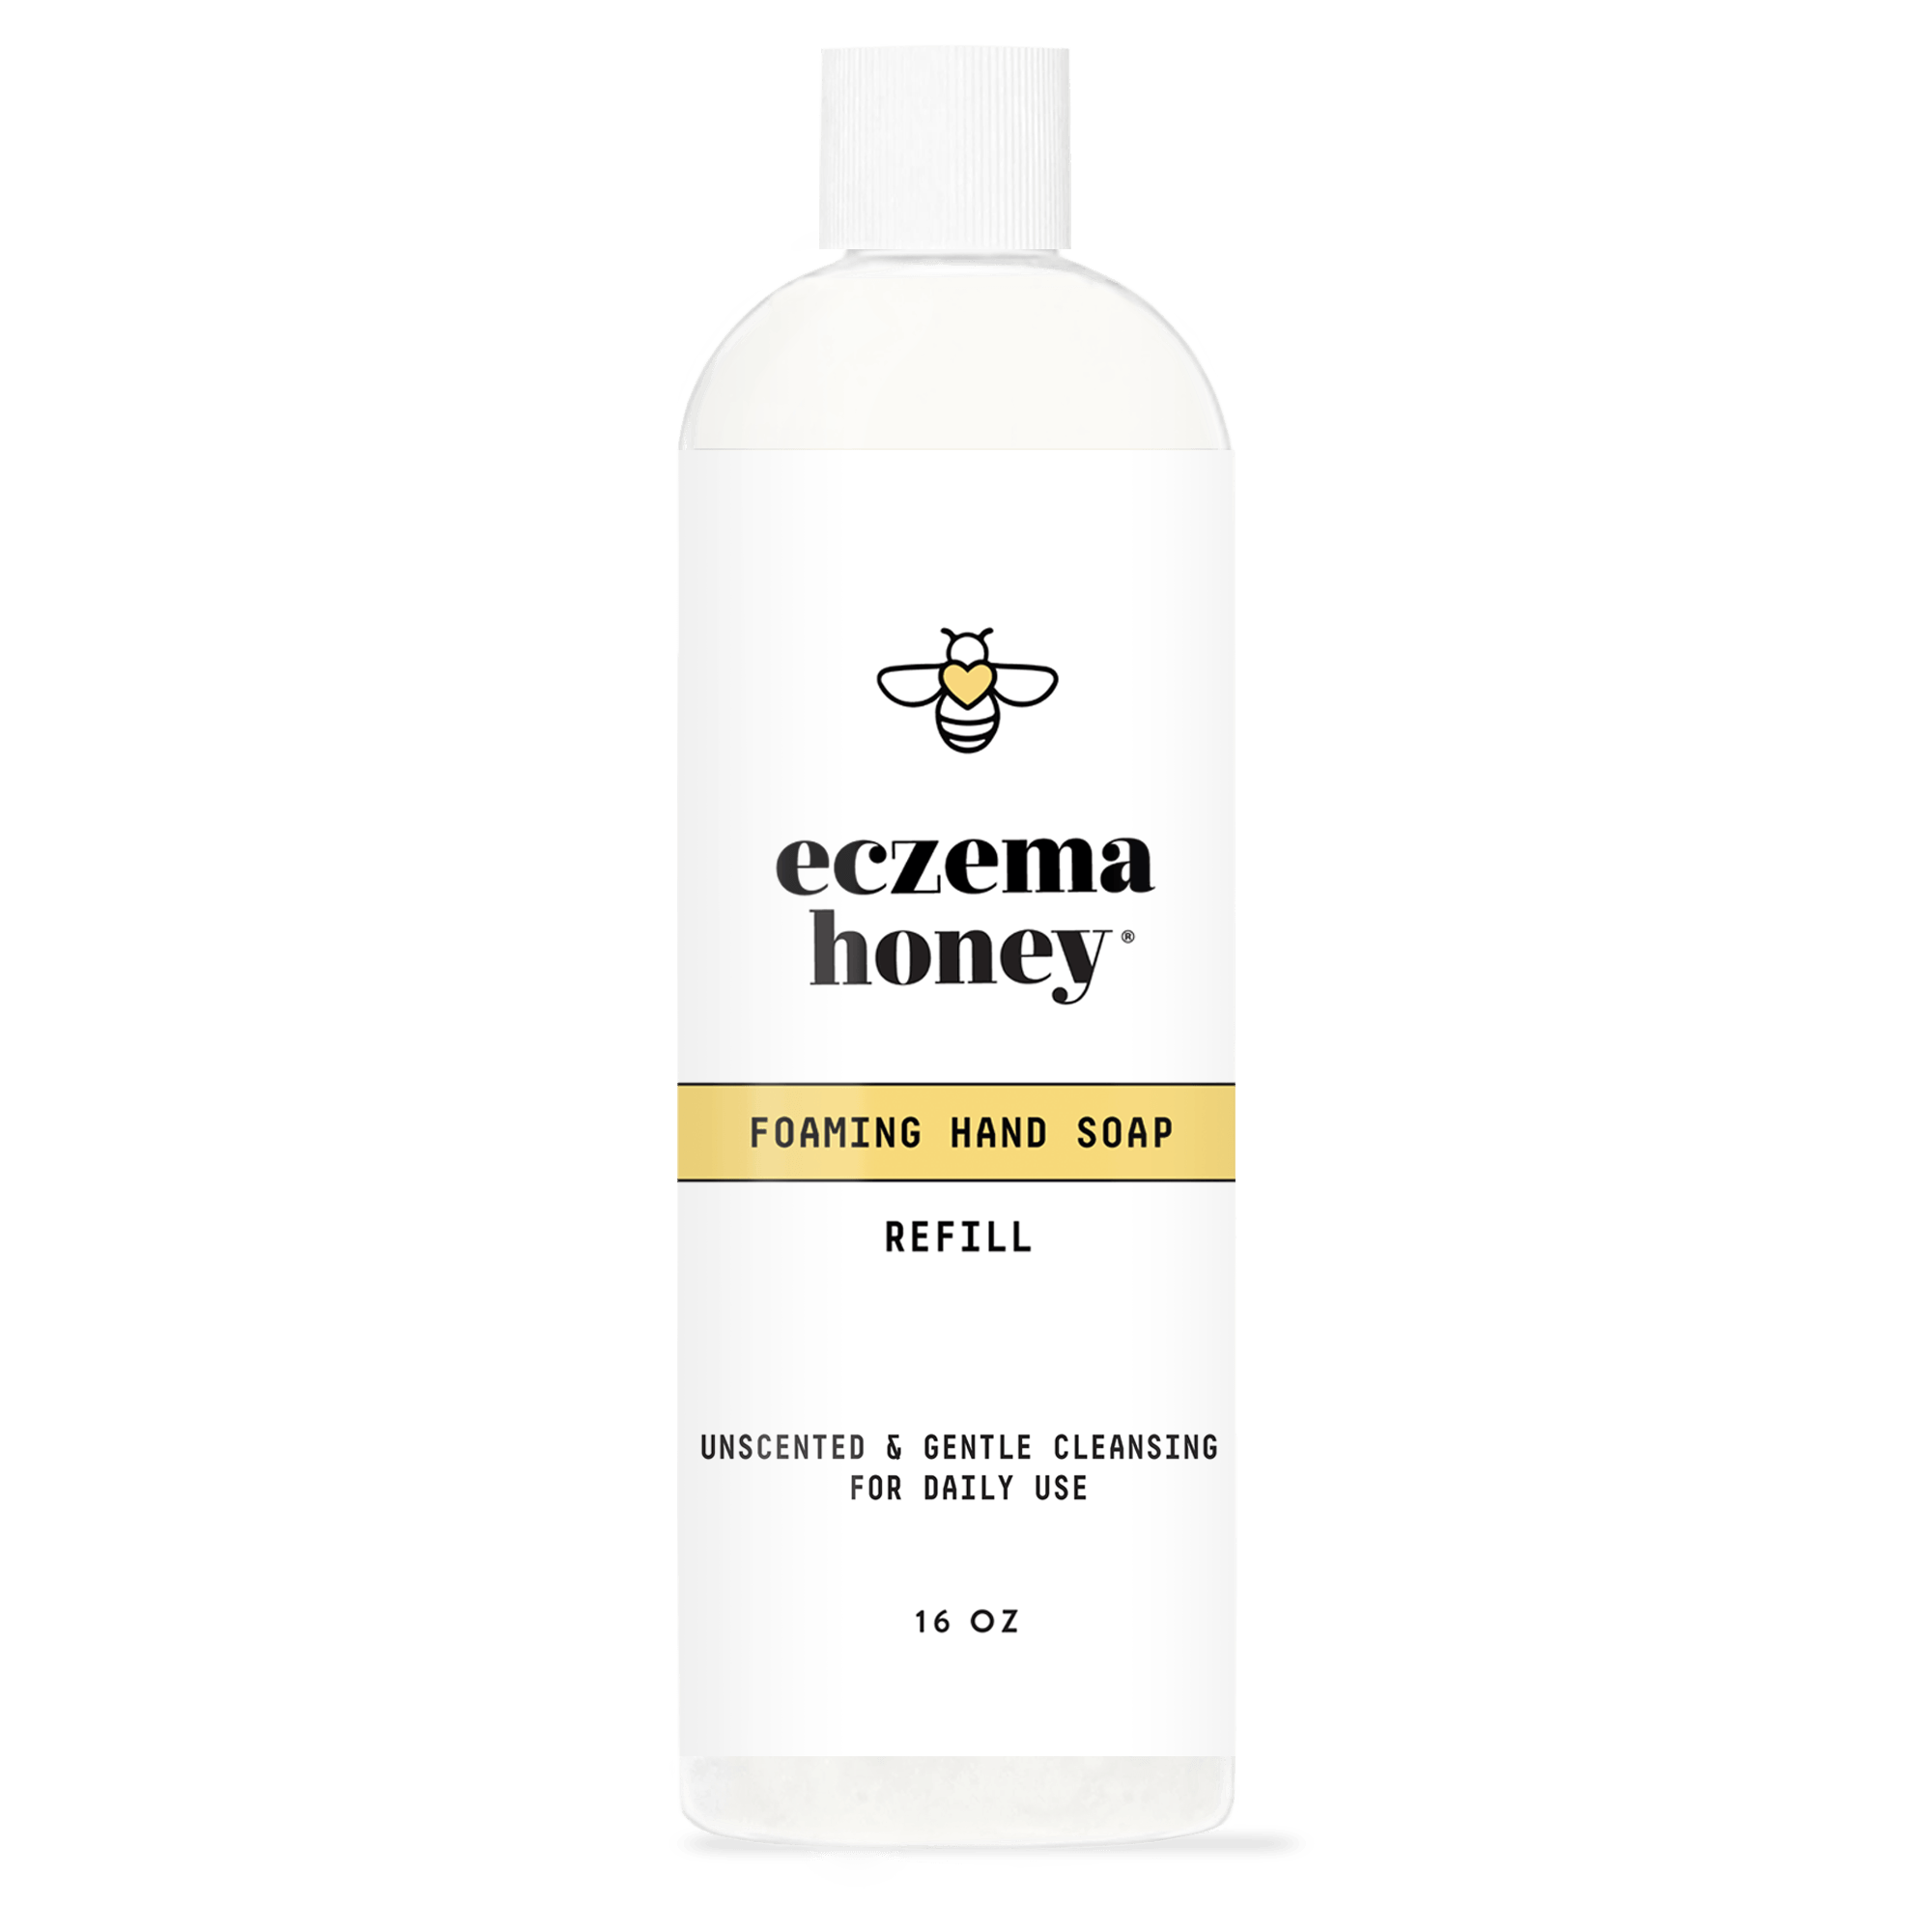 Eczema Honey Gentle Foaming Hand Soap 16oz Refill